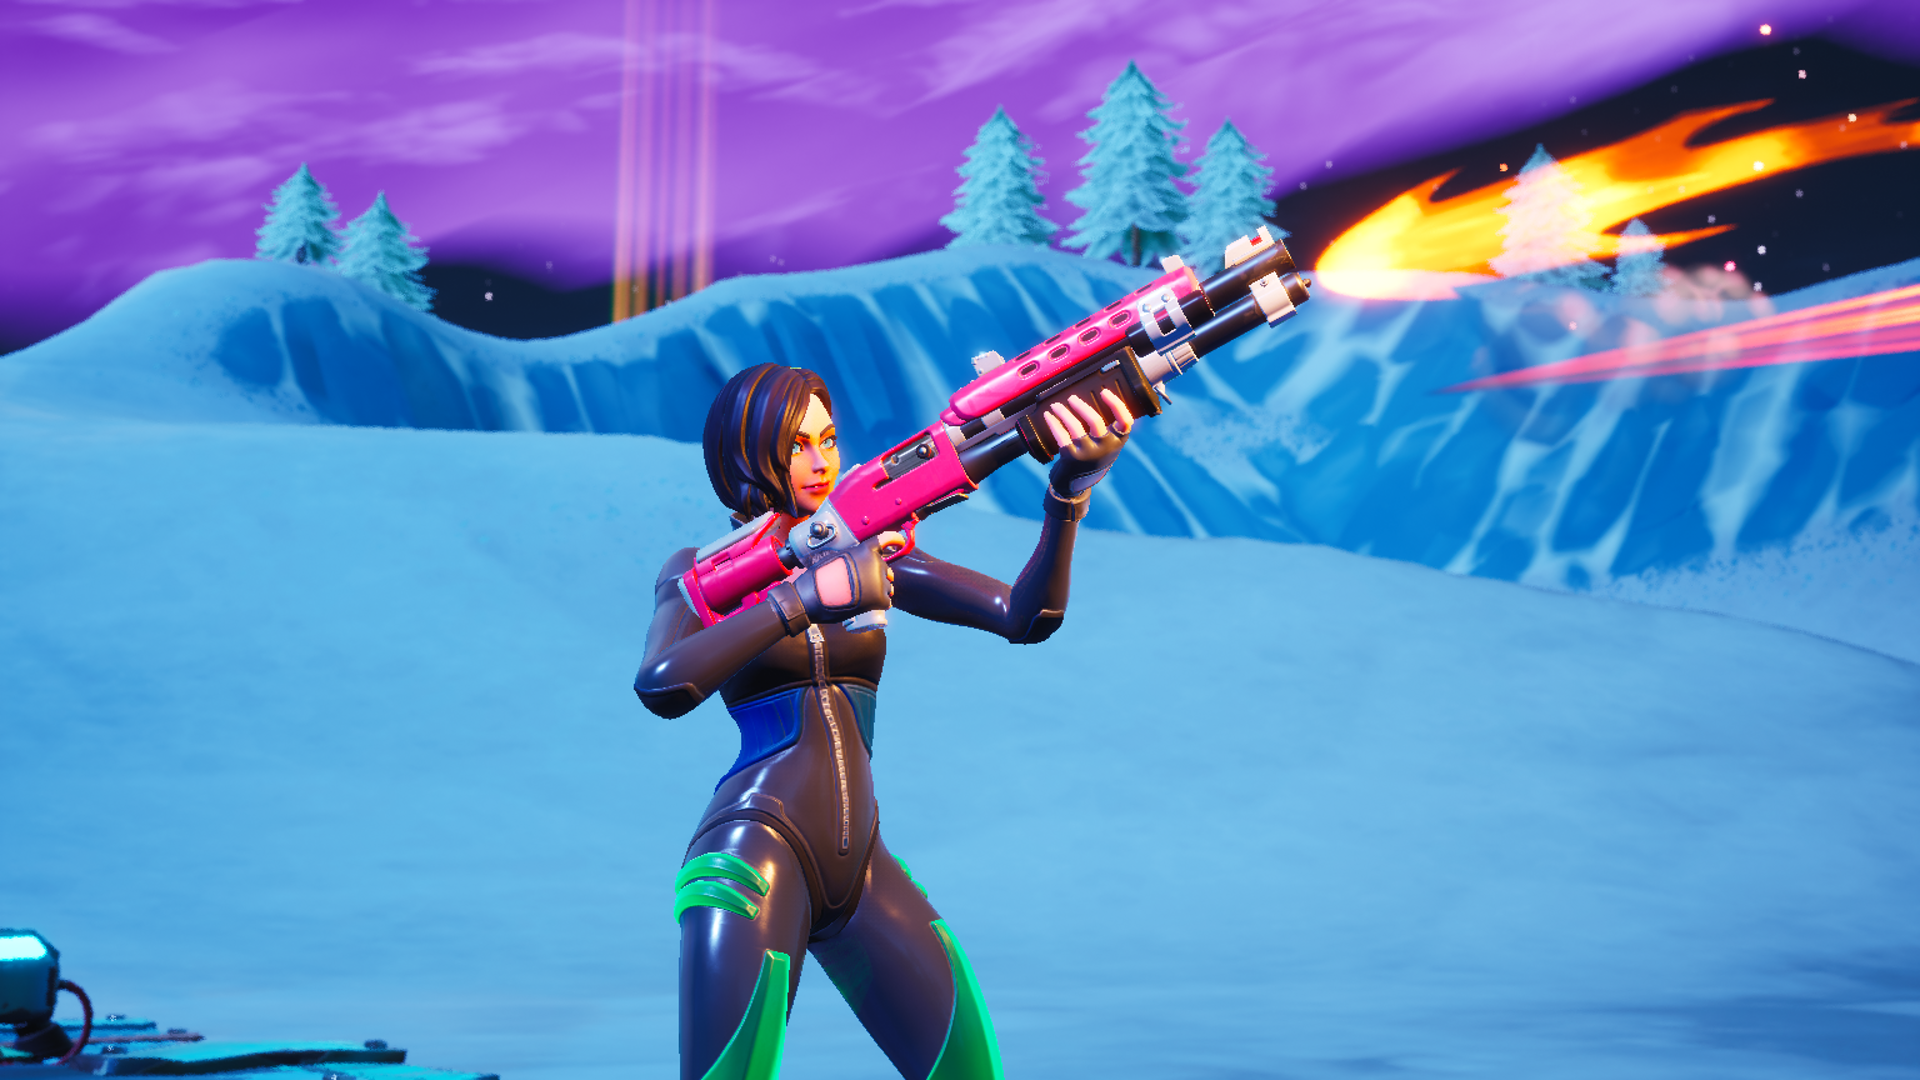 Fortnite patch v9.40 adds another new shotgun and brings back the Bolt-Action Sniper